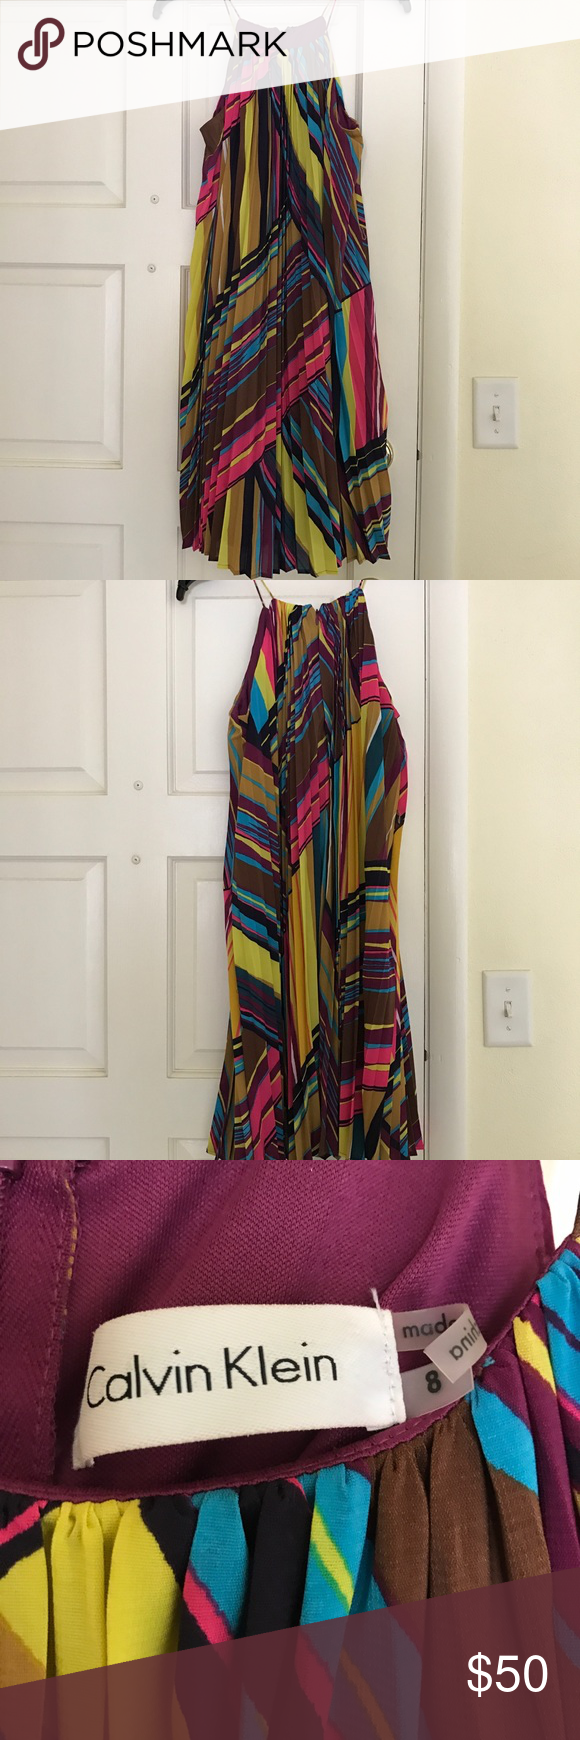 Calvin Klein Dress Size 8 Calvin Klein Dress. Size 8. Worn Once. Looks great belted! Calvin Klein Dresses